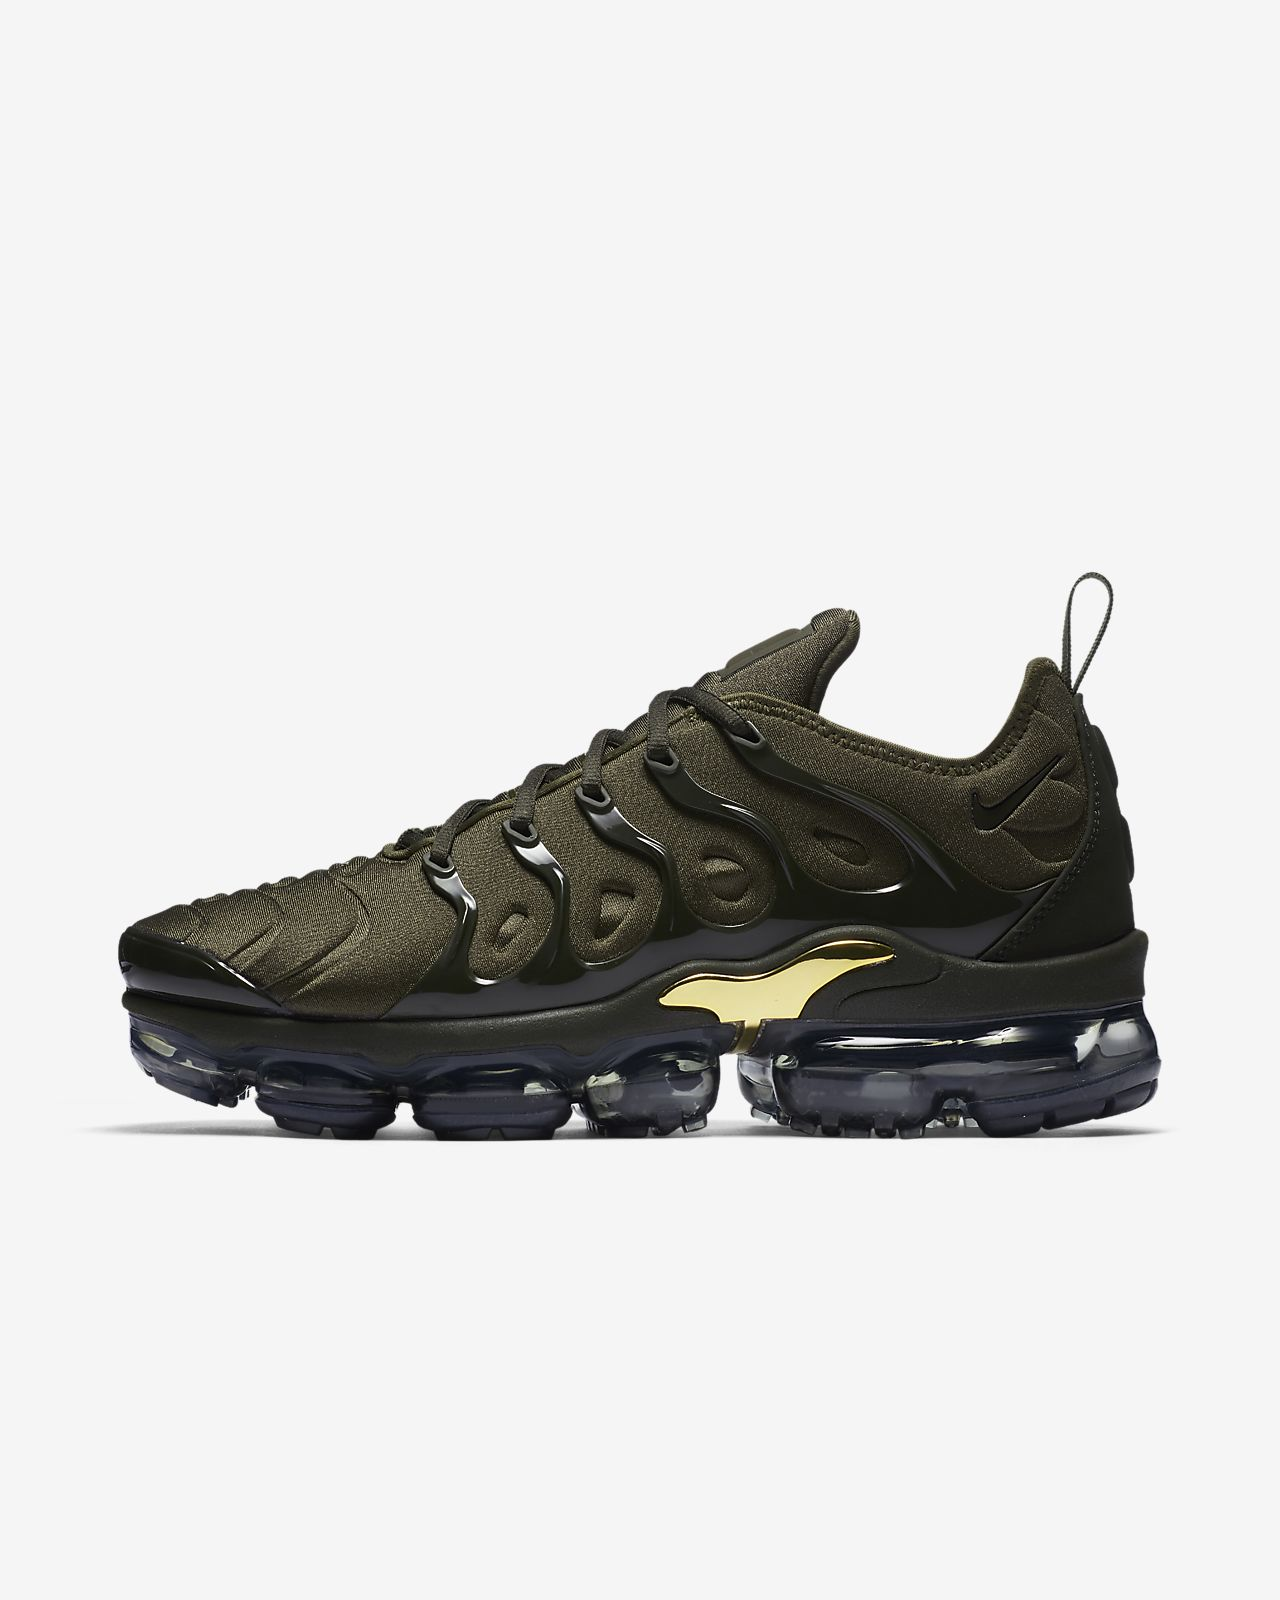 dfd2c0f4398 Nike Air VaporMax Plus Men s Shoe. Nike.com